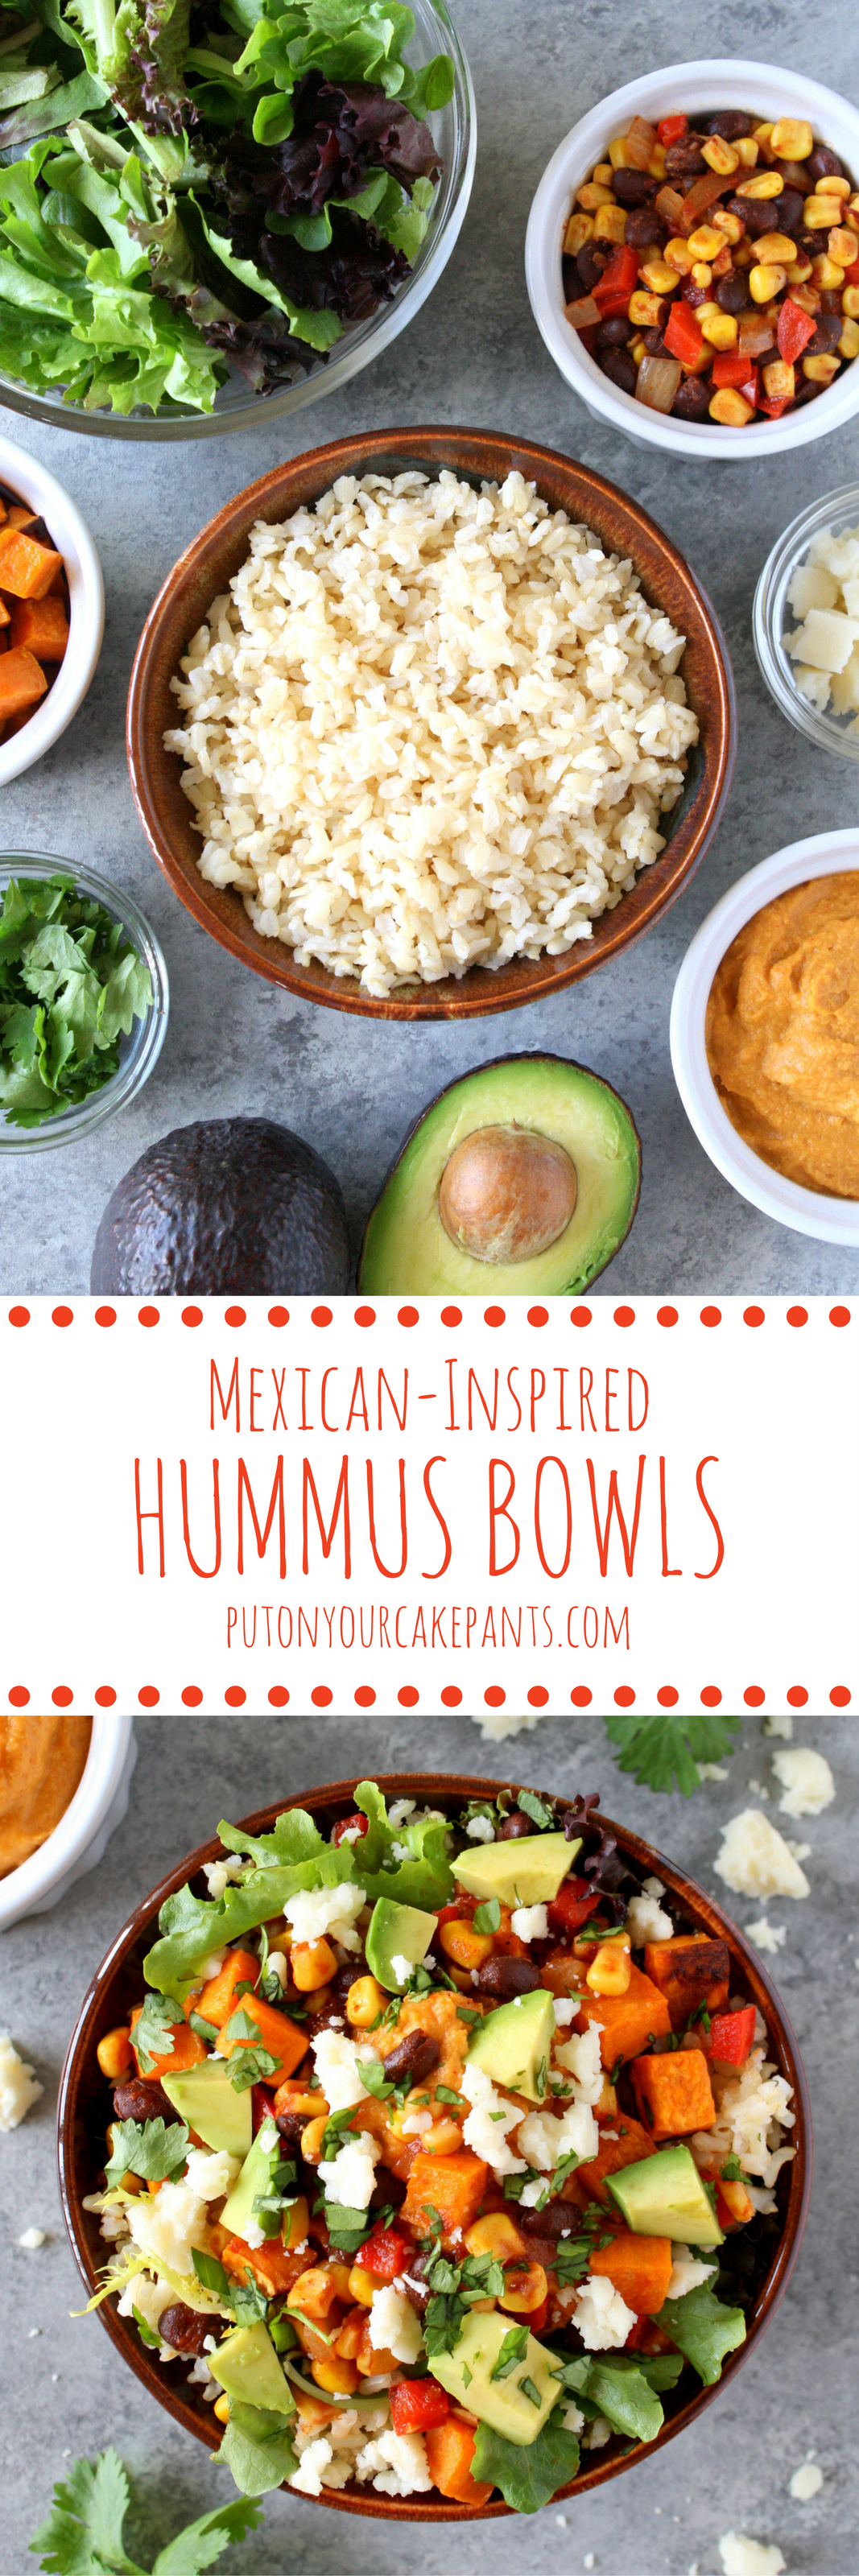 Mexican-inspired hummus bowls